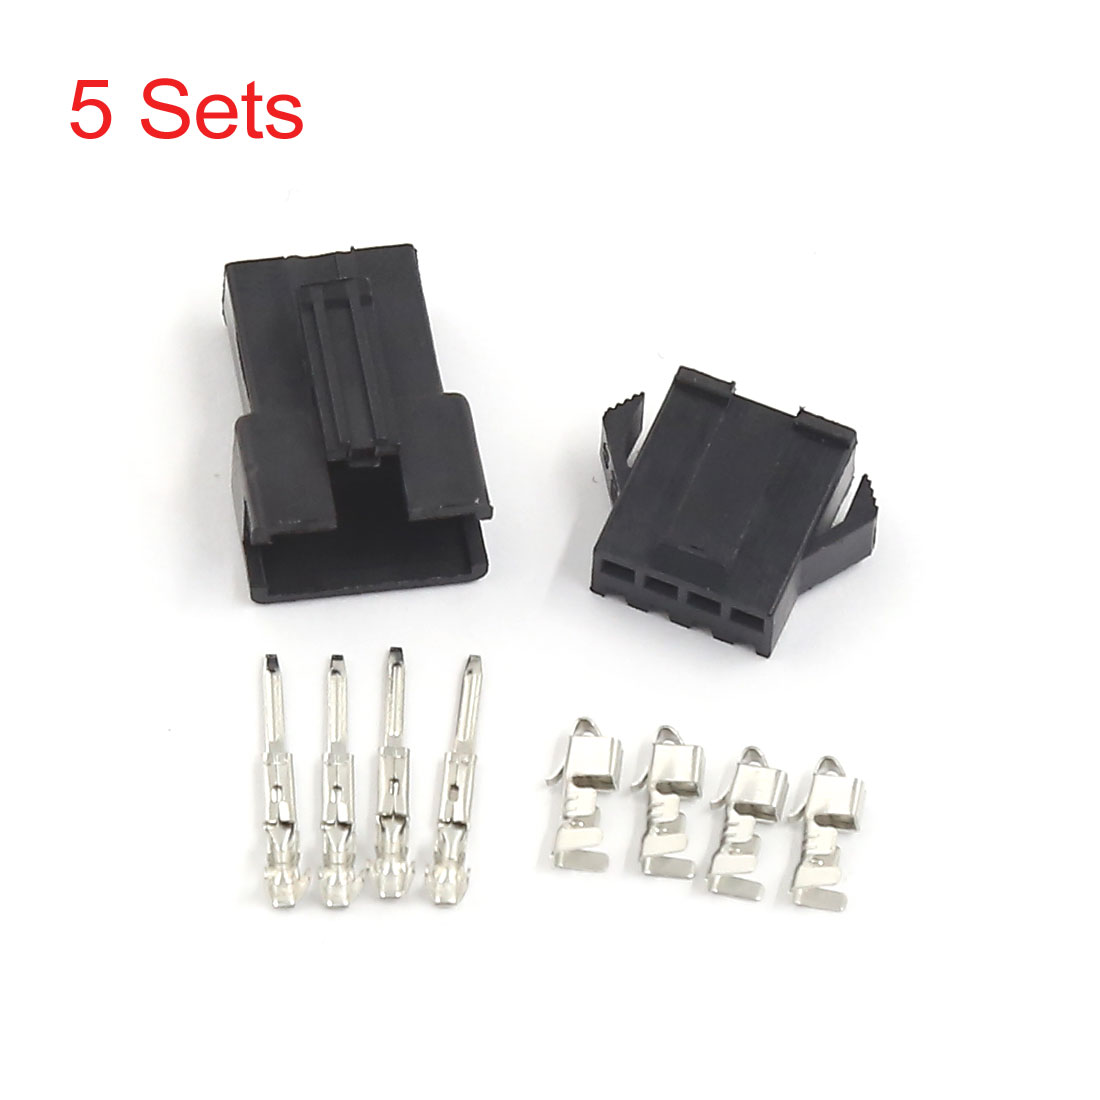 UXCELL 5 Sets 4 Pin Male Female Slot Power Supply Pcb Board Car Atx Connector(China (Mainland))